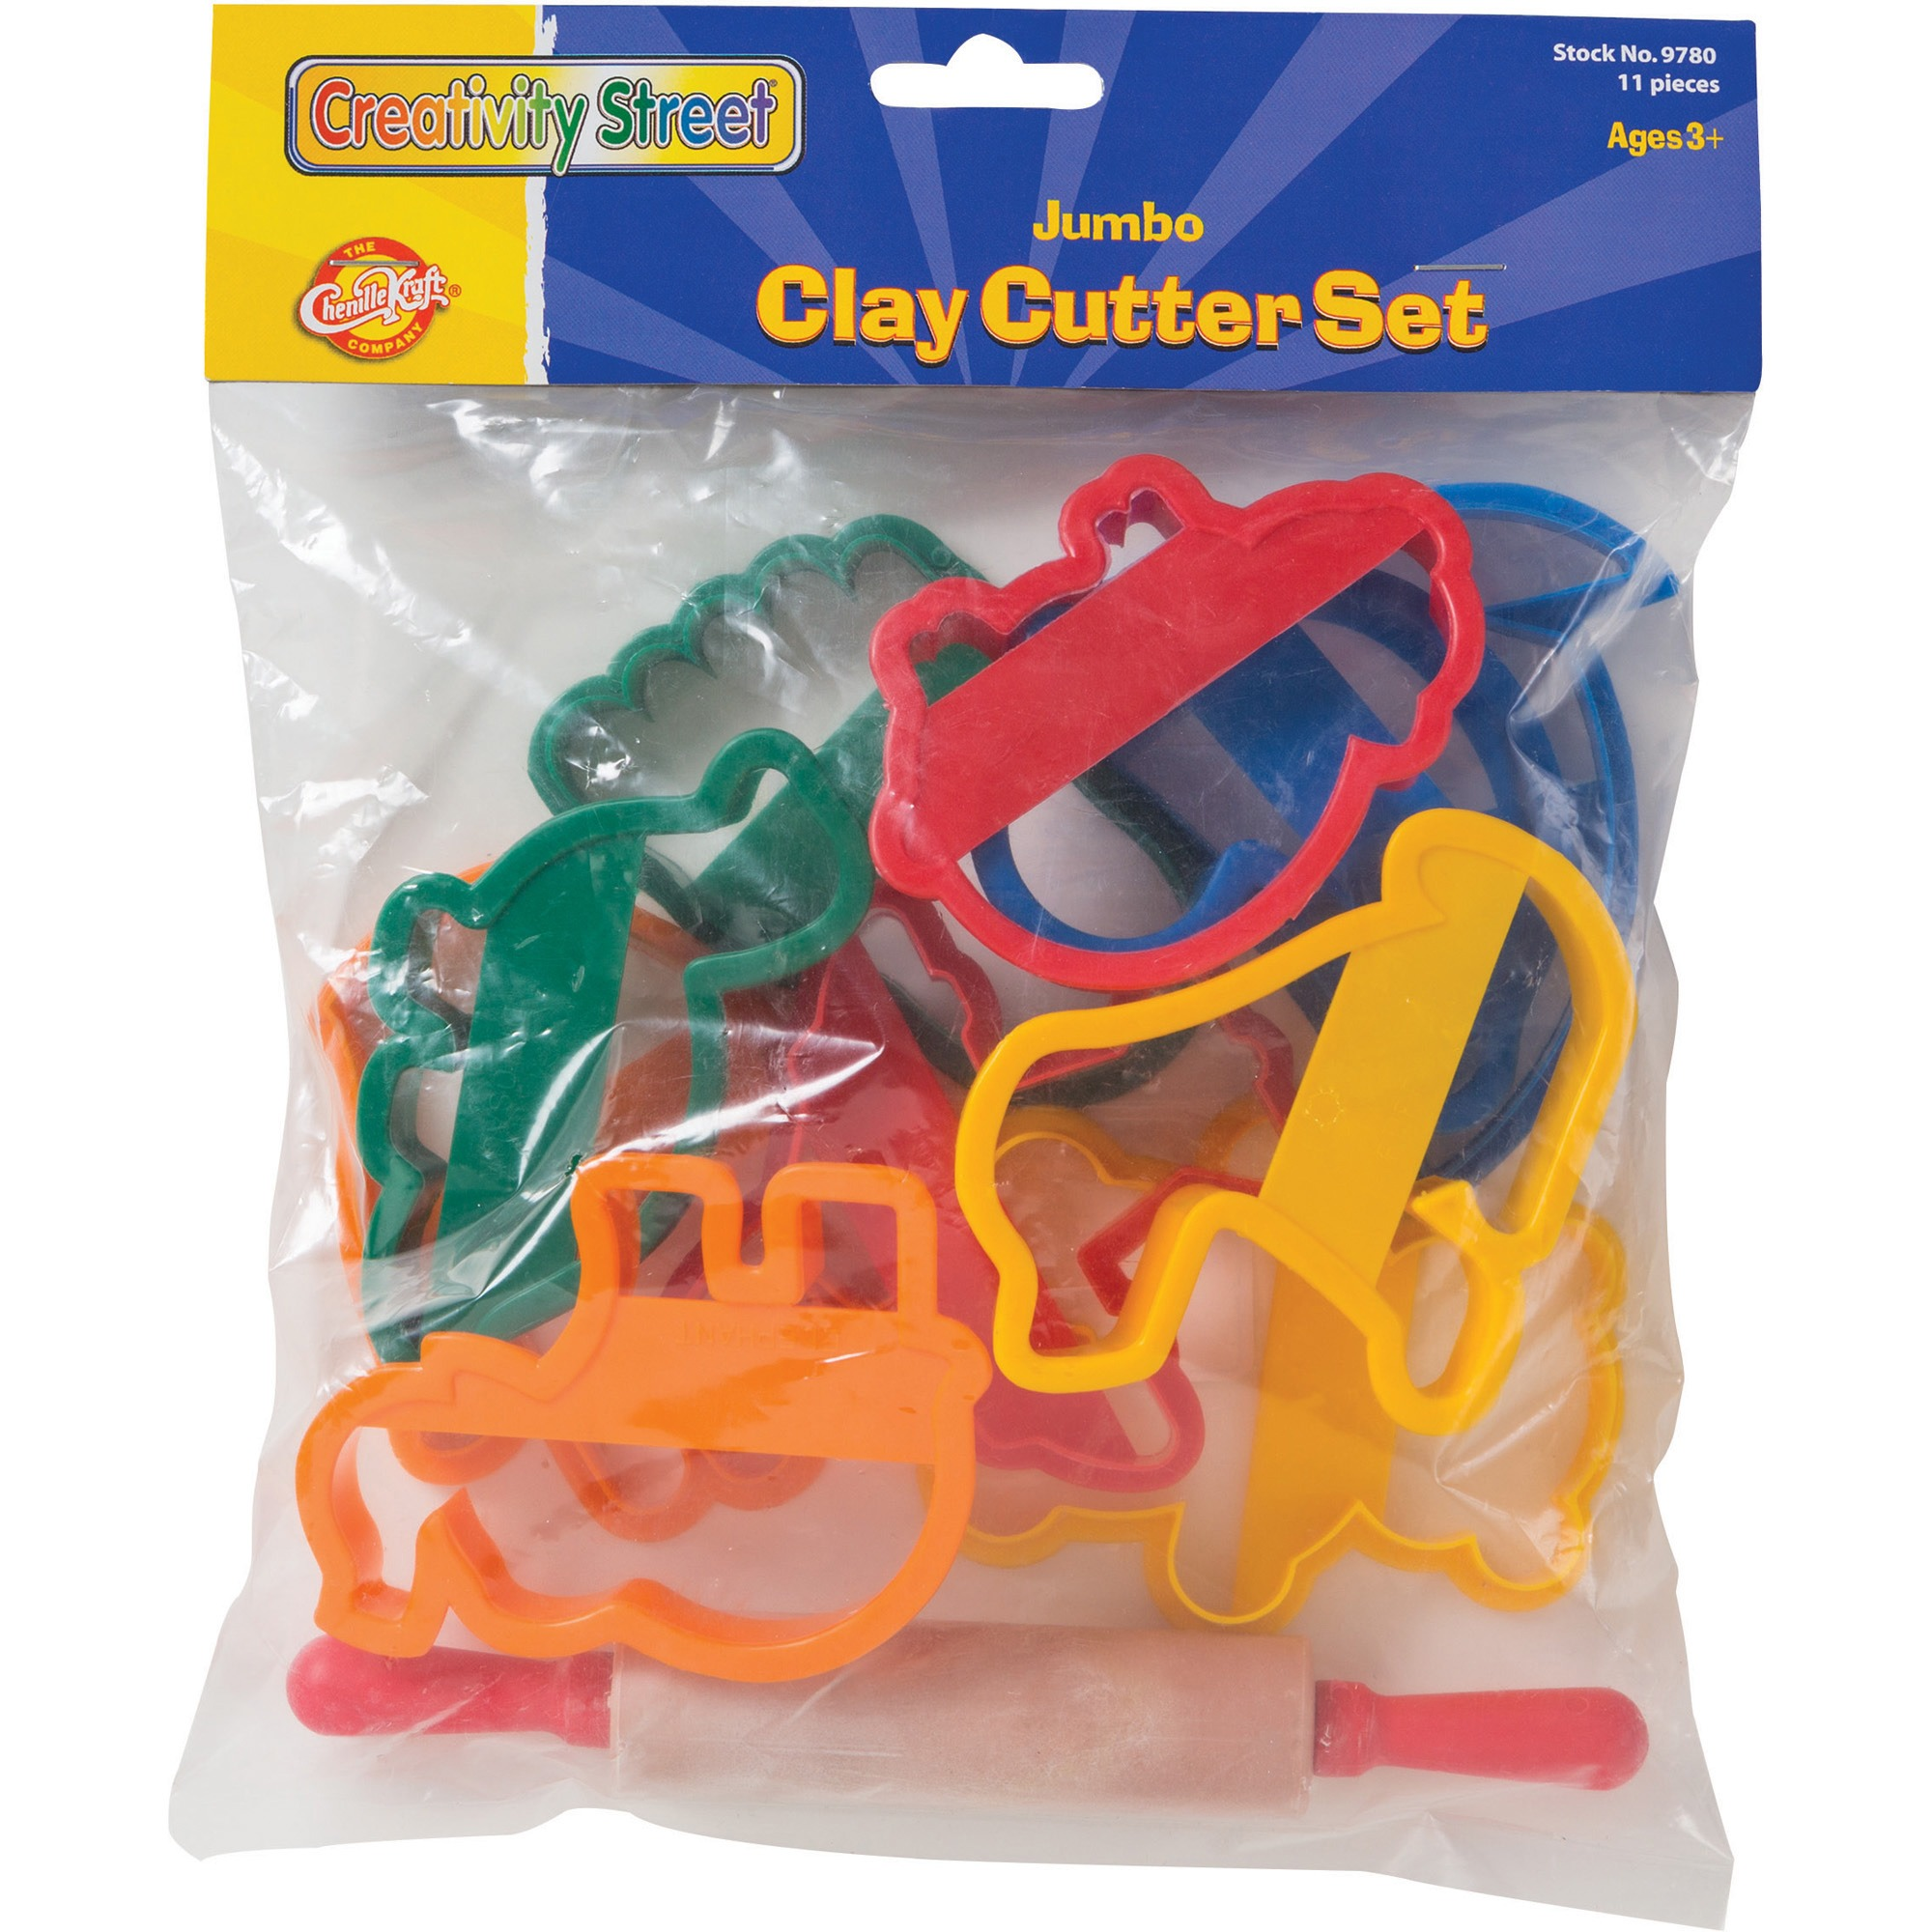 Creativity Street Clay Cutter Set, Rolling Pin and 10 Cutters